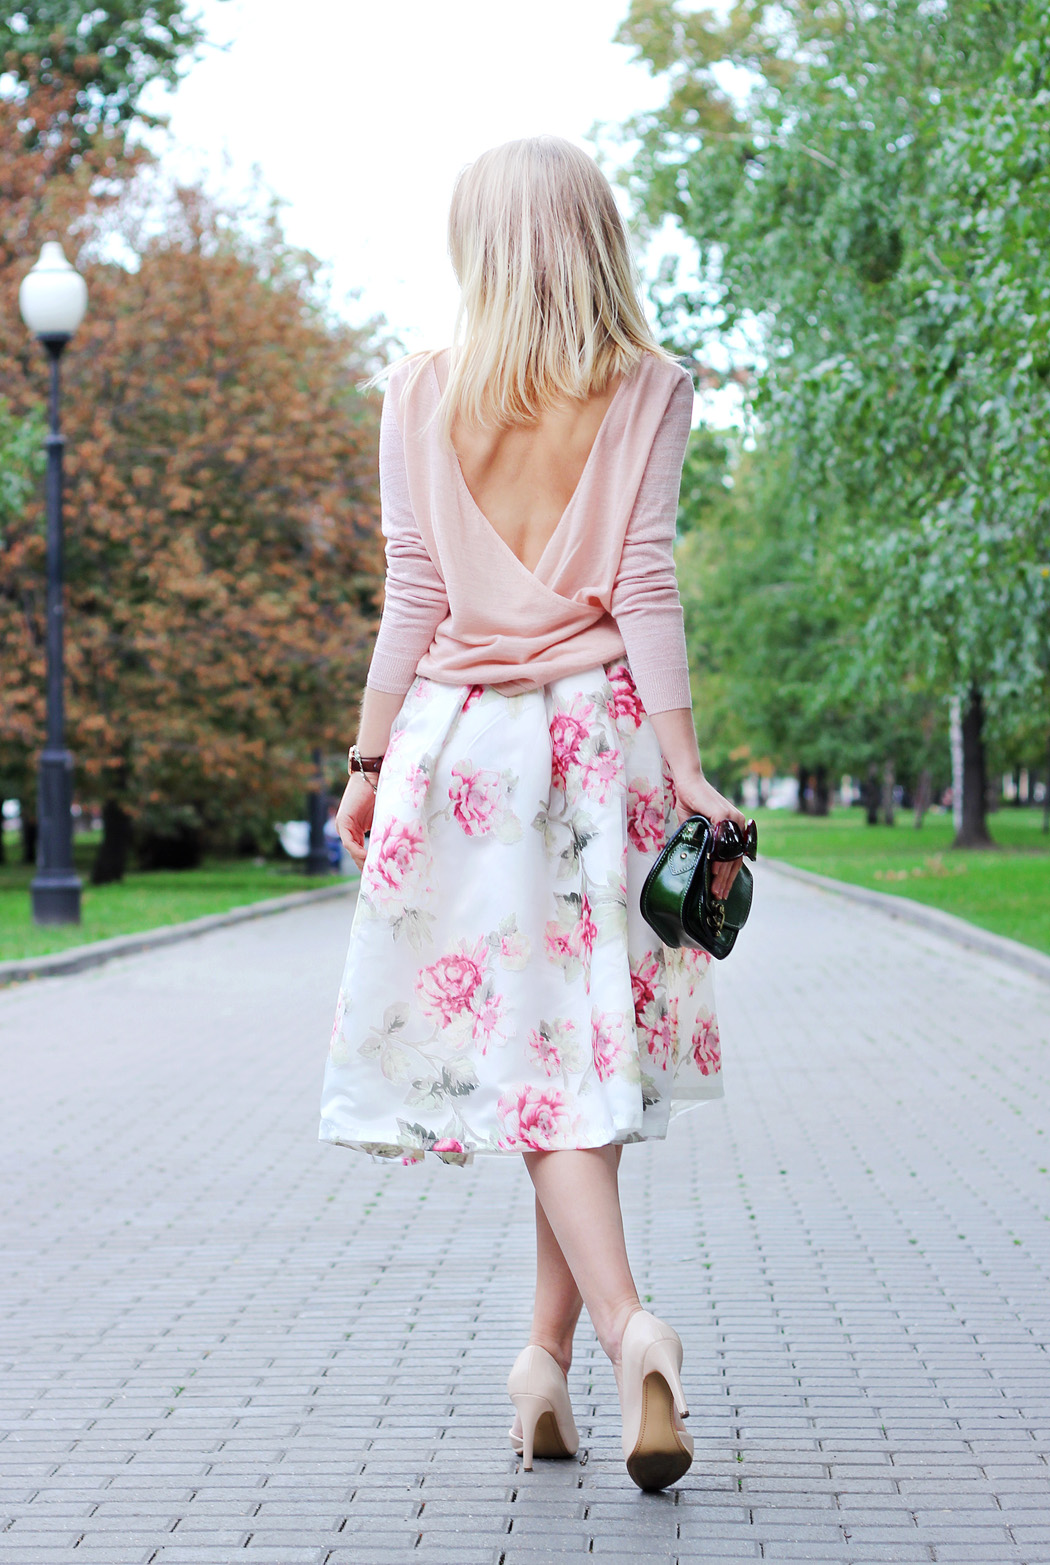 inspiration, streetstyle, summer outfit, summer streetstyle, annamidday, top fashion blogger, top russian fashion blogger, фэшн блогер, русский блогер, известный блогер, топовый блогер, russian bloger, top russian blogger, streetfashion, russian fashion blogger, blogger, fashion, style, fashionista, модный блогер, российский блогер, ТОП блогер, ootd, lookoftheday, look, популярный блогер, российский модный блогер, annamidday, top russian blogger, summer look,  russian girl, с чем носить миди юбку, миди юбка, midi skirt, girly, daniel wellington, asos, chicwish